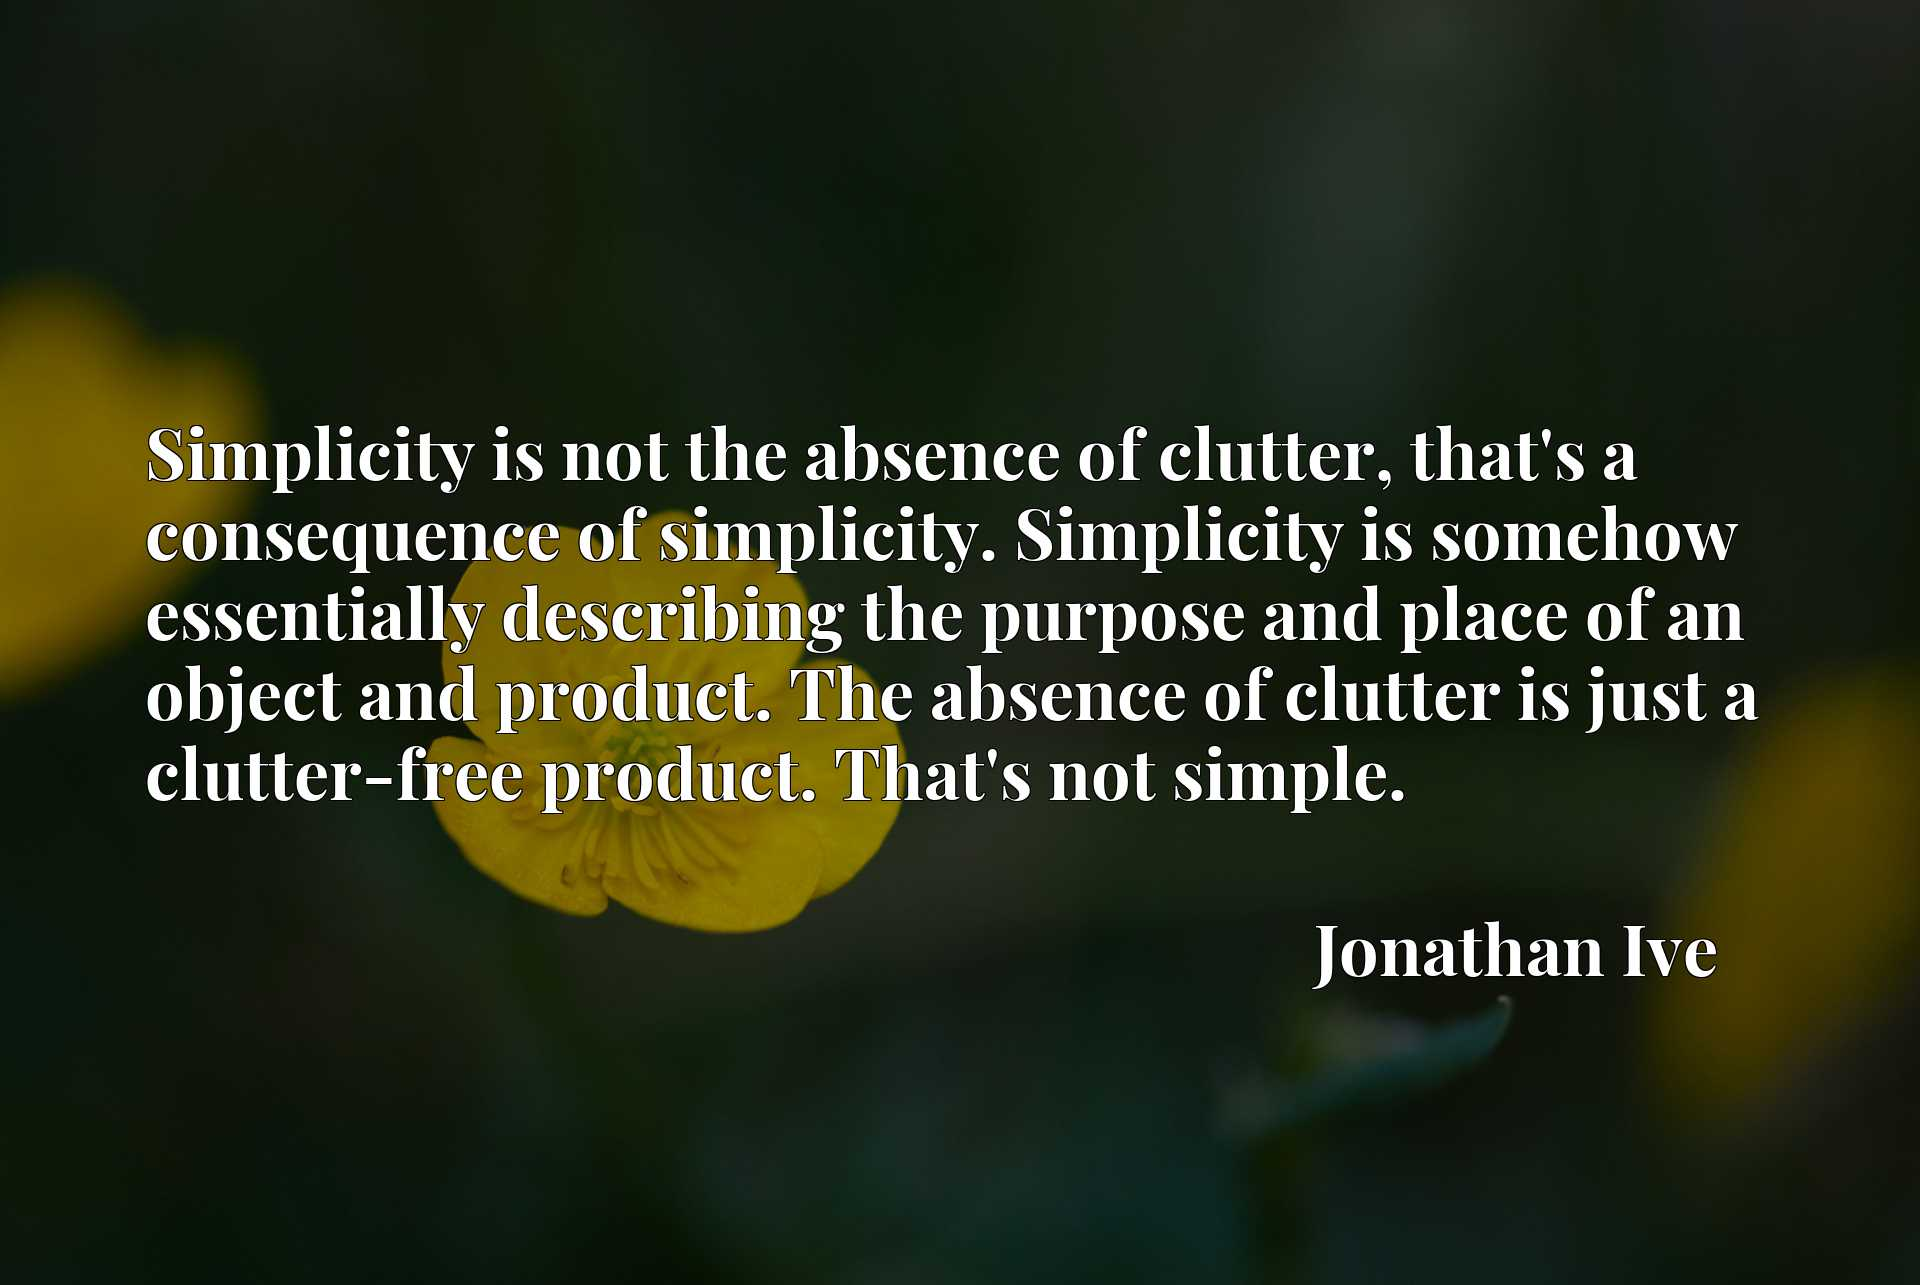 Simplicity is not the absence of clutter, that's a consequence of simplicity. Simplicity is somehow essentially describing the purpose and place of an object and product. The absence of clutter is just a clutter-free product. That's not simple.